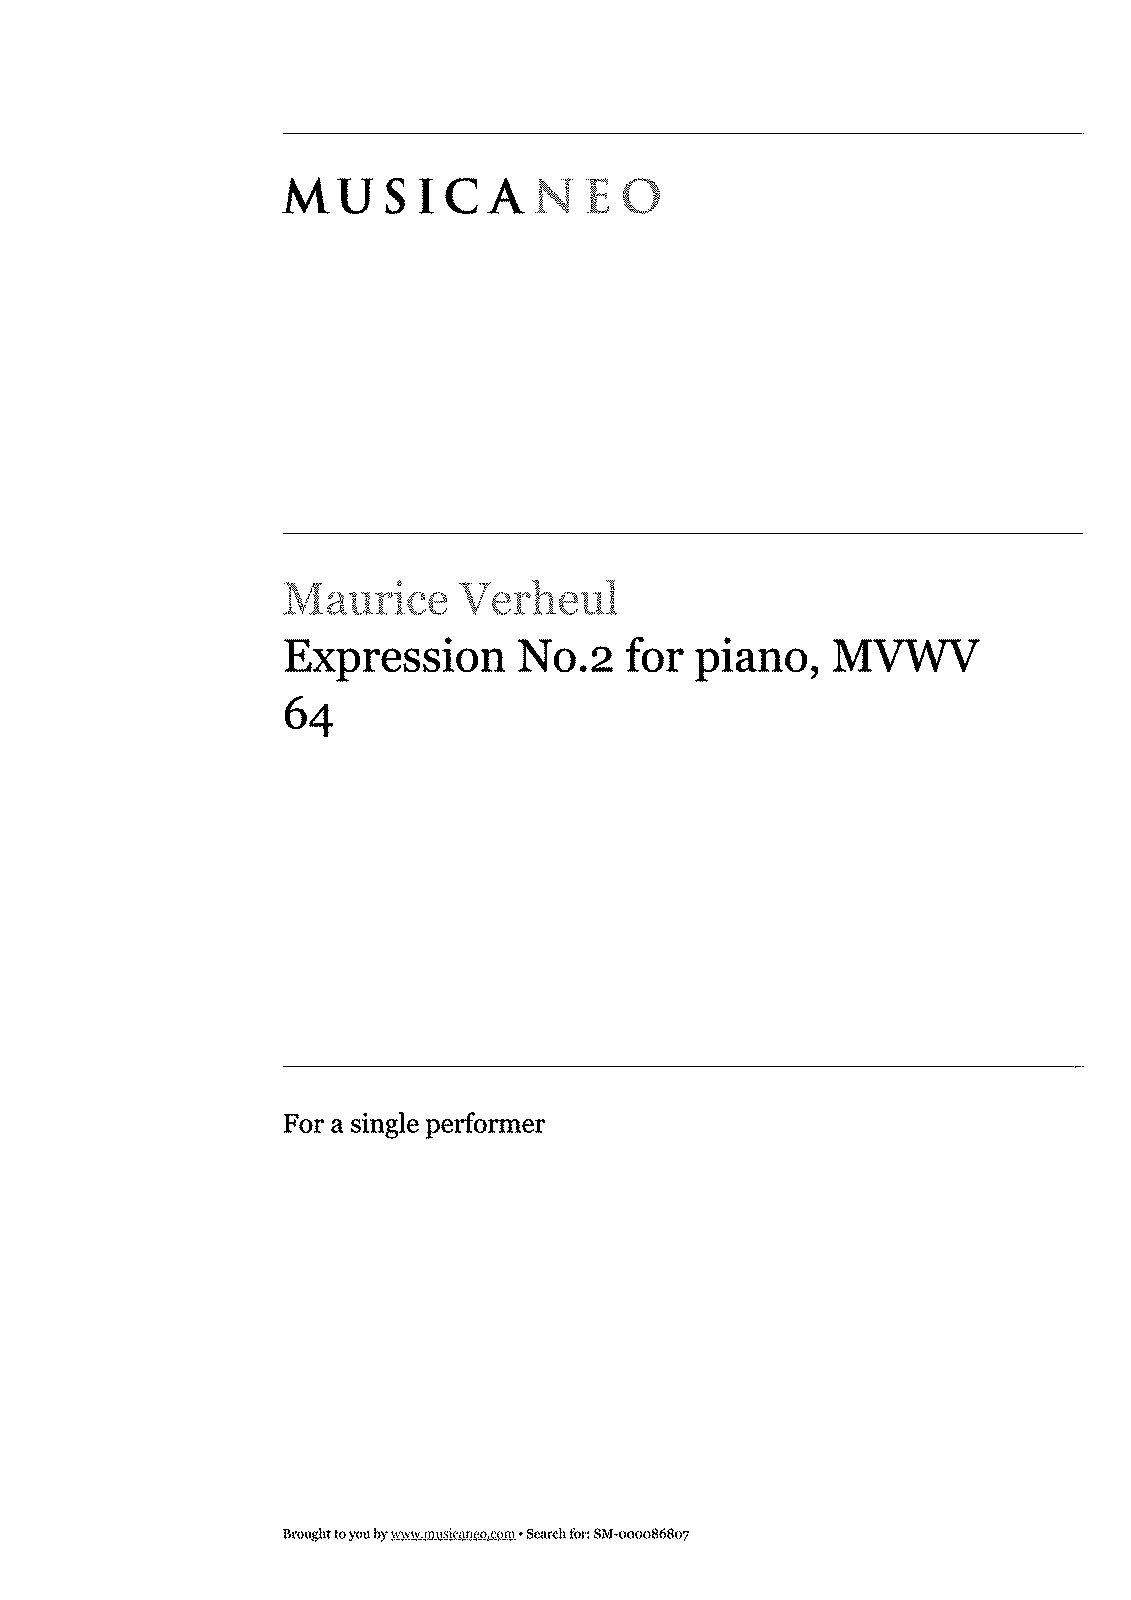 PMLP719295-expression no 2 for piano mvwv 64.pdf